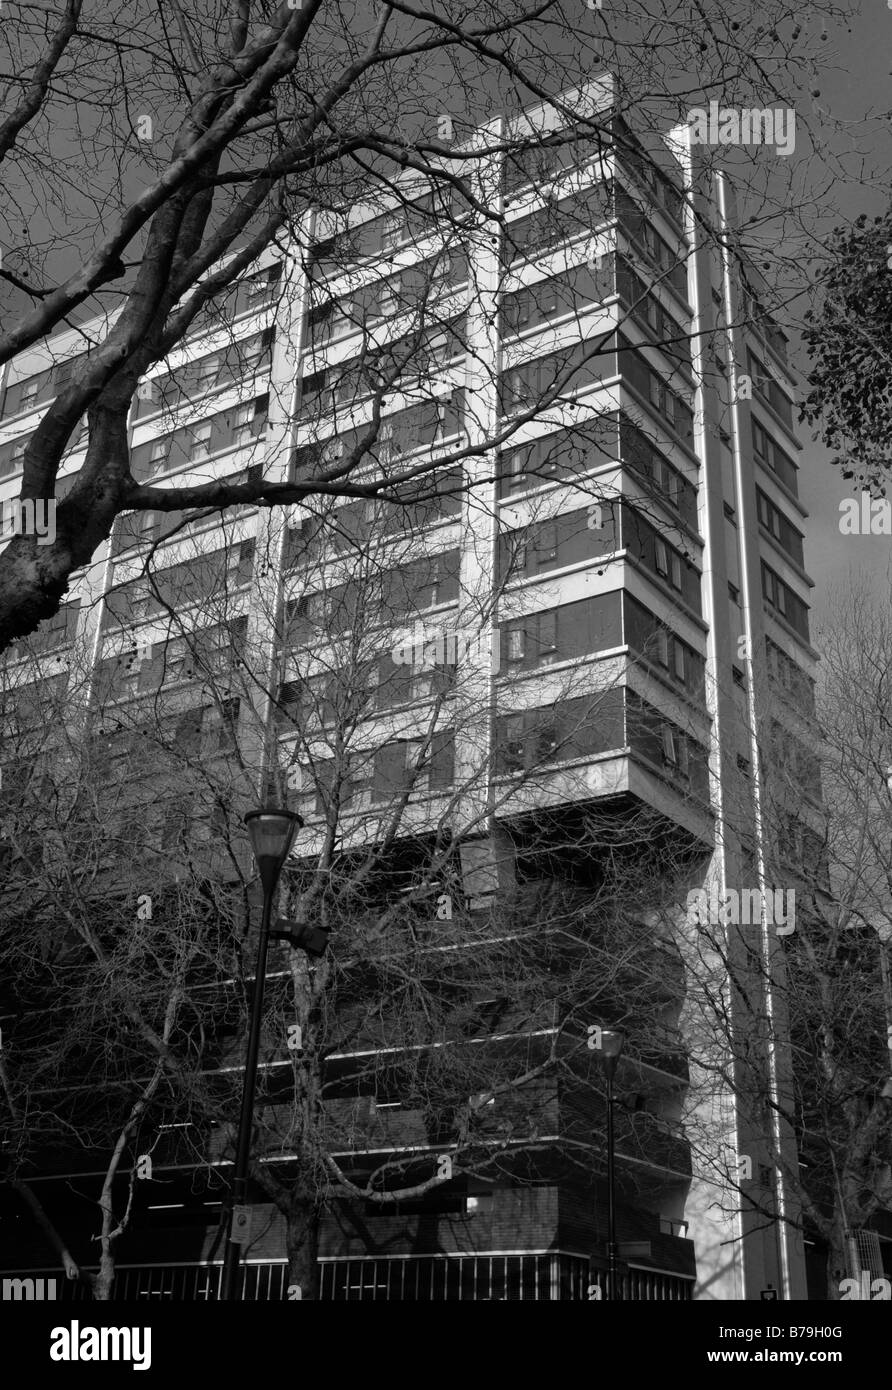 high contrast monotone shot of a block of flats or apartments viewed through a bare tree in the winter - Stock Image